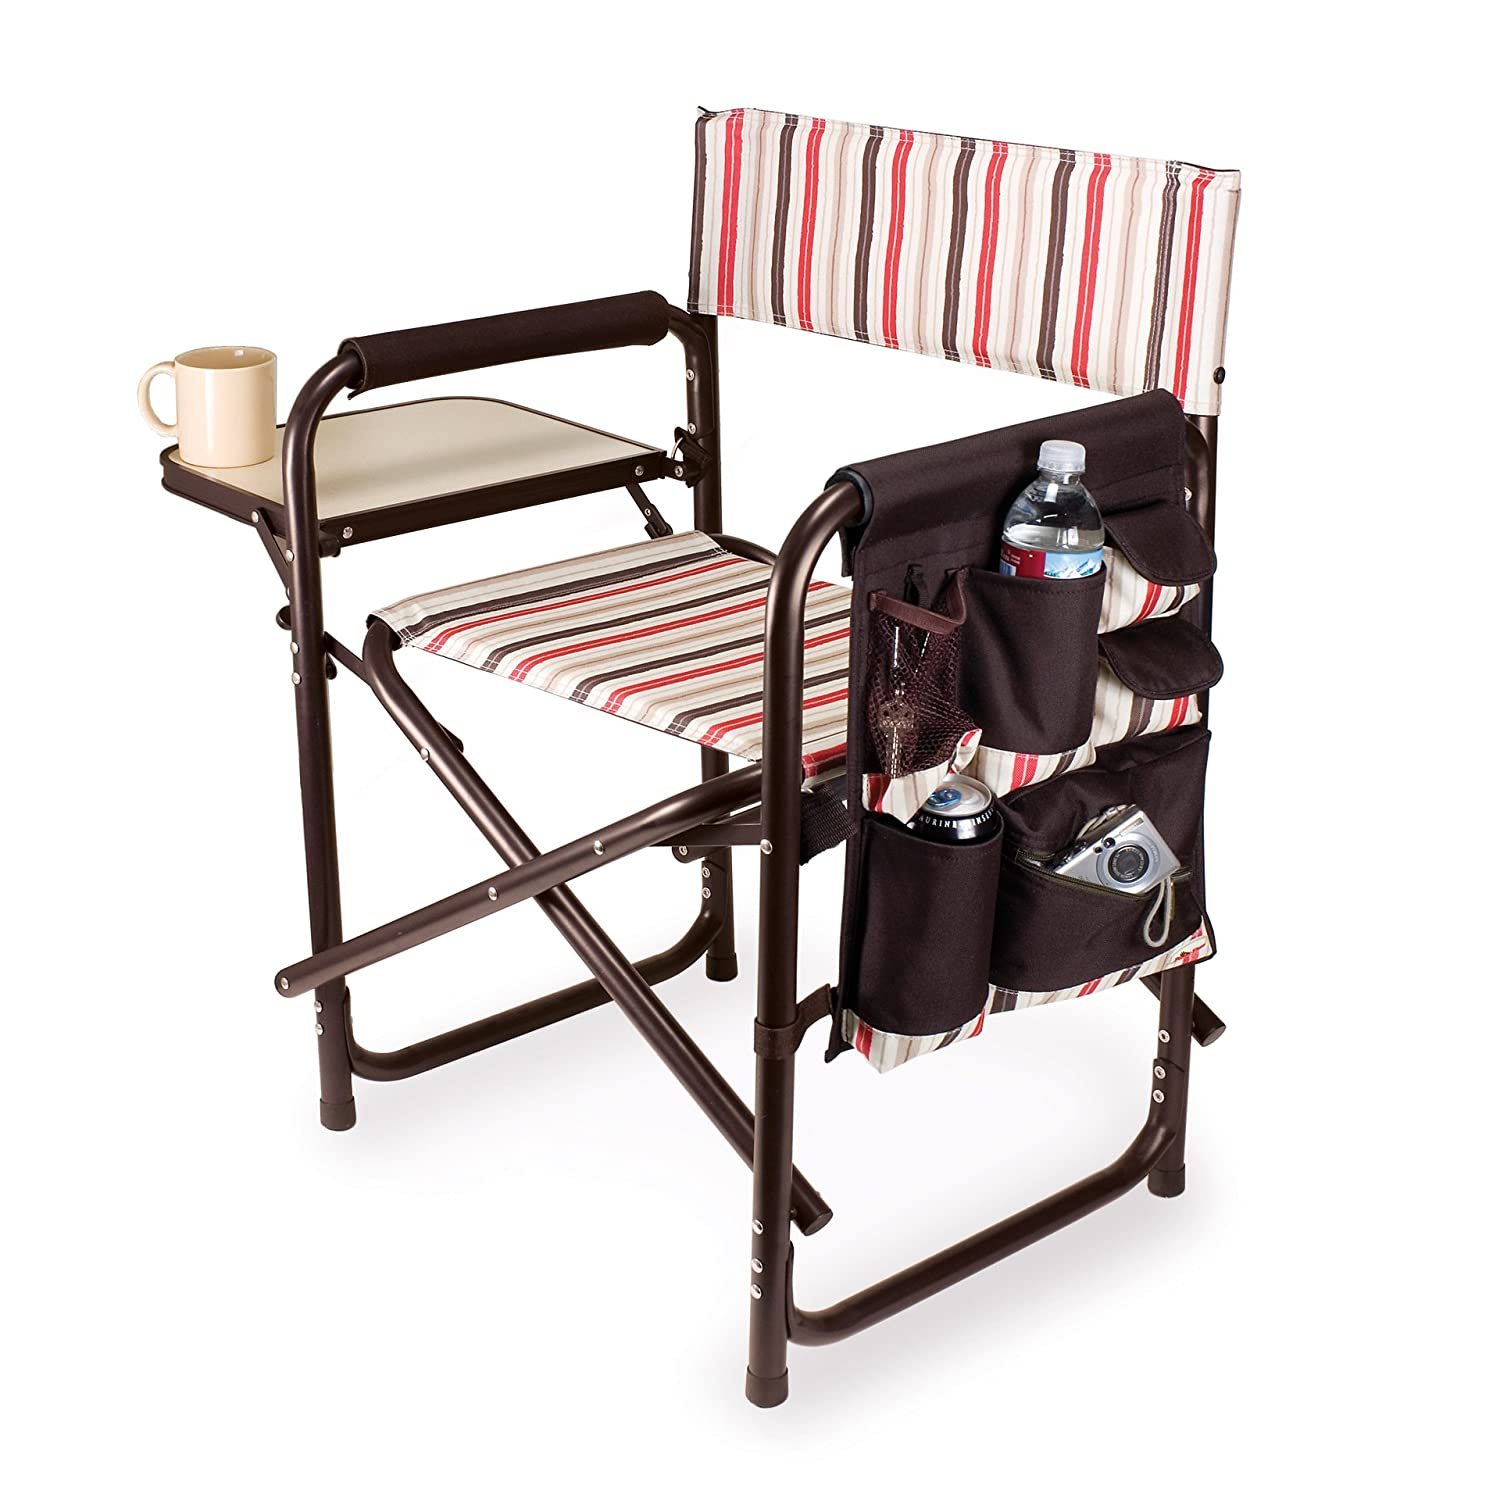 Picnic Chair Lightweight Picnic Camping Beach Backyard Portable Folding